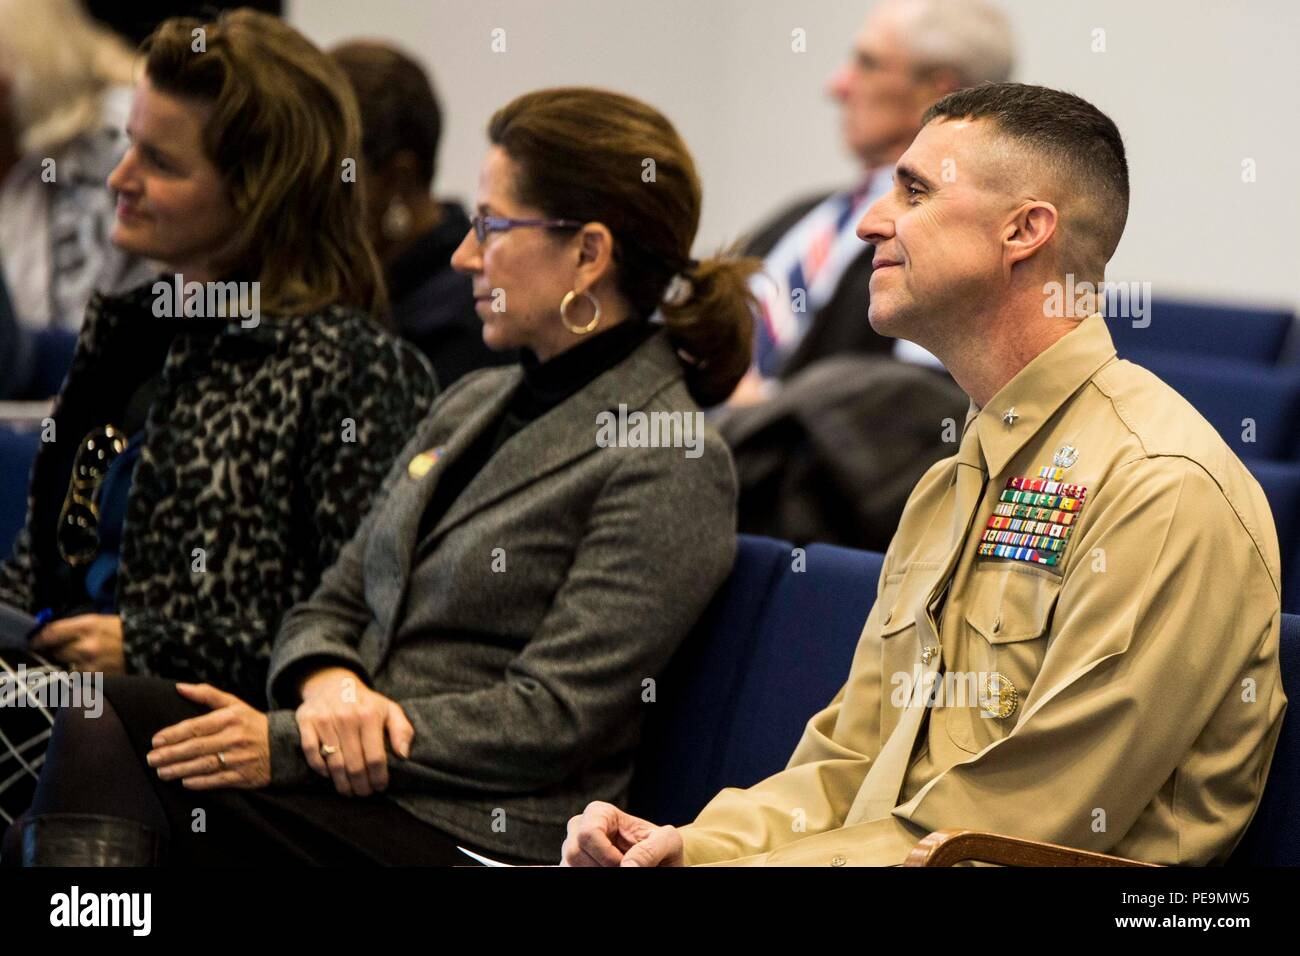 Brig. Gen. Robert Castellvi, deputy commanding general of II Marine Expeditionary Force, and other guests listen to speakers during the Onslow Forum which discussed the 'Protect What You've Earned' campaign at Jacksonville City Hall, Nov. 24, 2015. The campaign, led by II Marine Expeditionary Force, was designed as a way to encourage Marines and sailors to make sound and responsible decisions when it comes to drinking, decrease alcohol related incidents and increase force preservation. Attending the forum where representatives from the Chamber of Commerce, Duke Energy Progress, Onslow County B - Stock Image